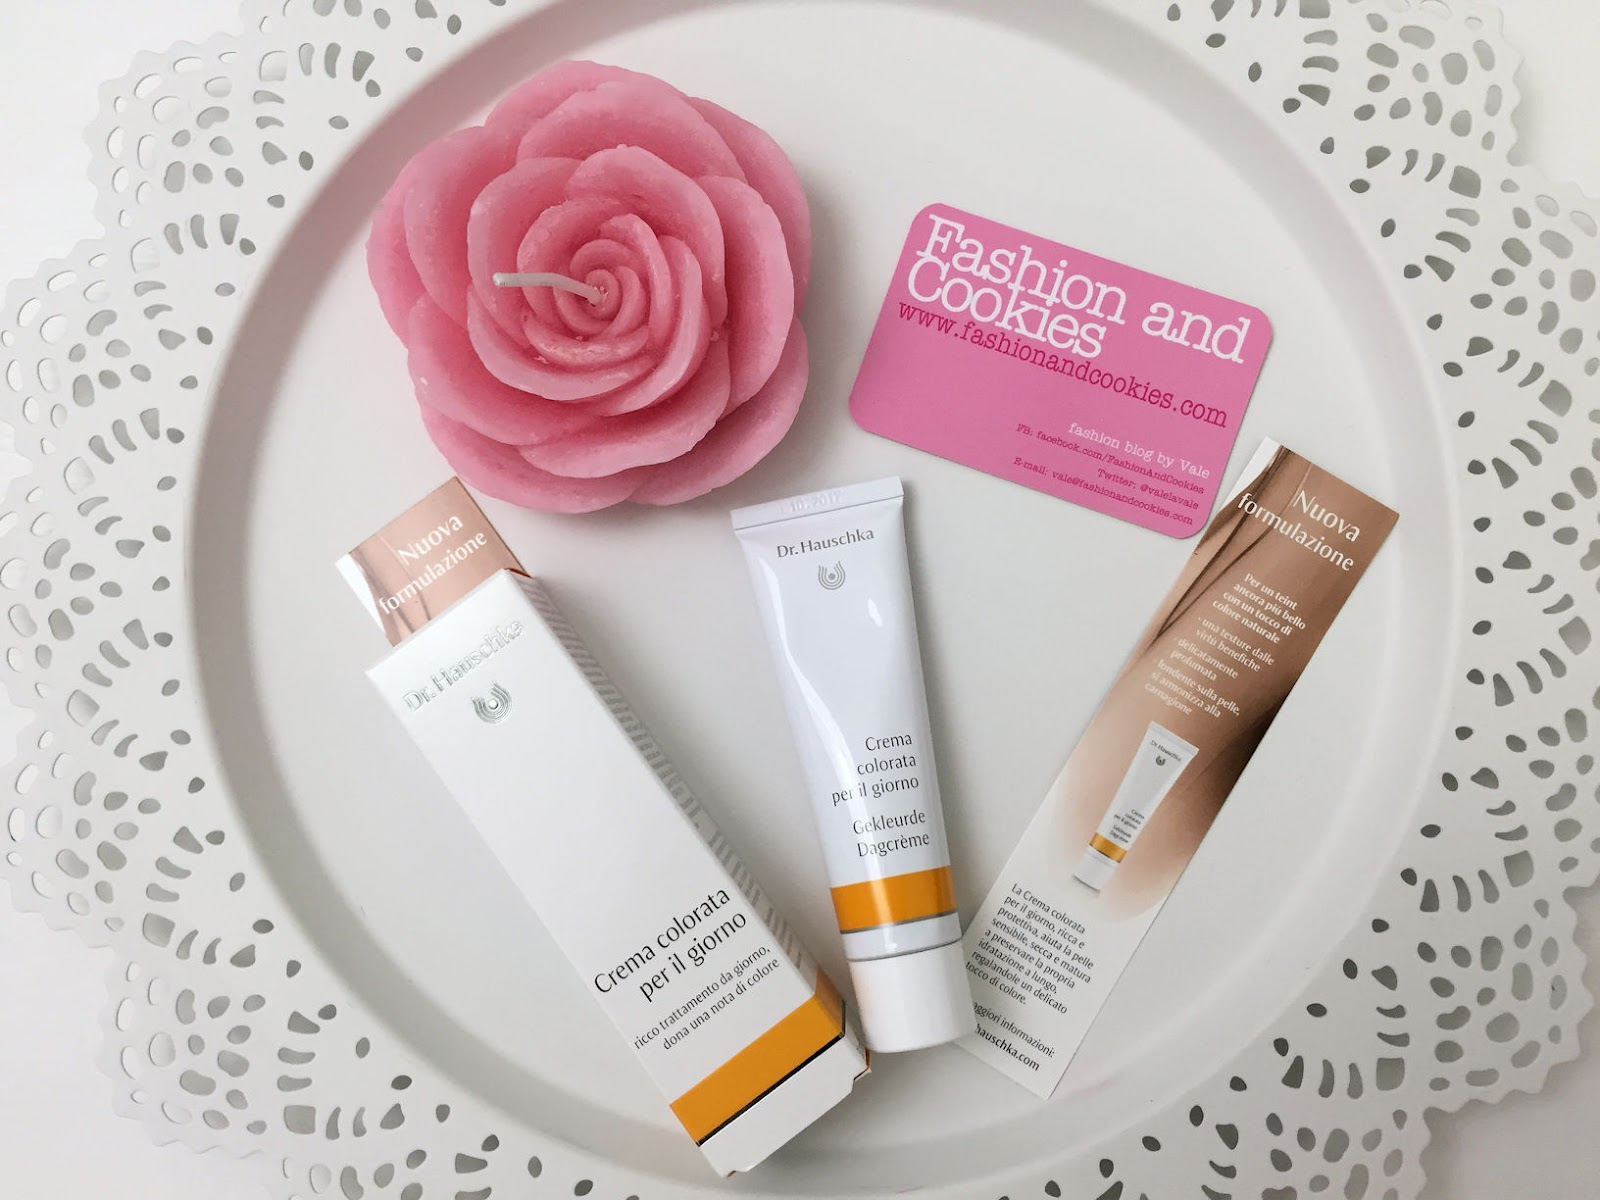 Dr. Hauschka tinted day cream review on Fashion and Cookies beauty blog, beauty blogger